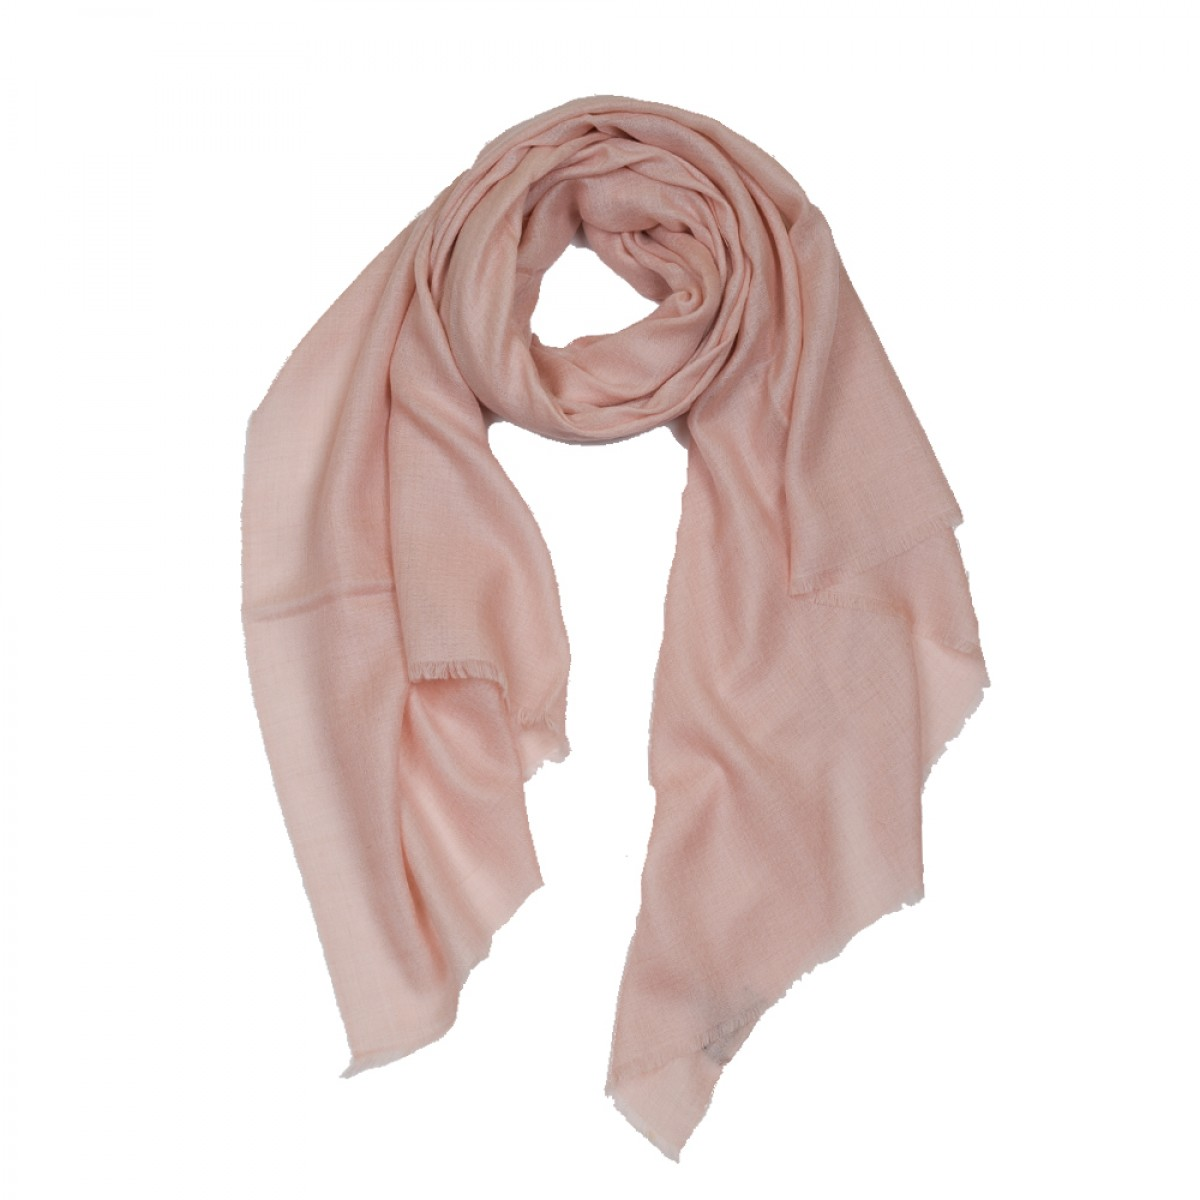 Plain Pashmina Stole - Dusty Pink